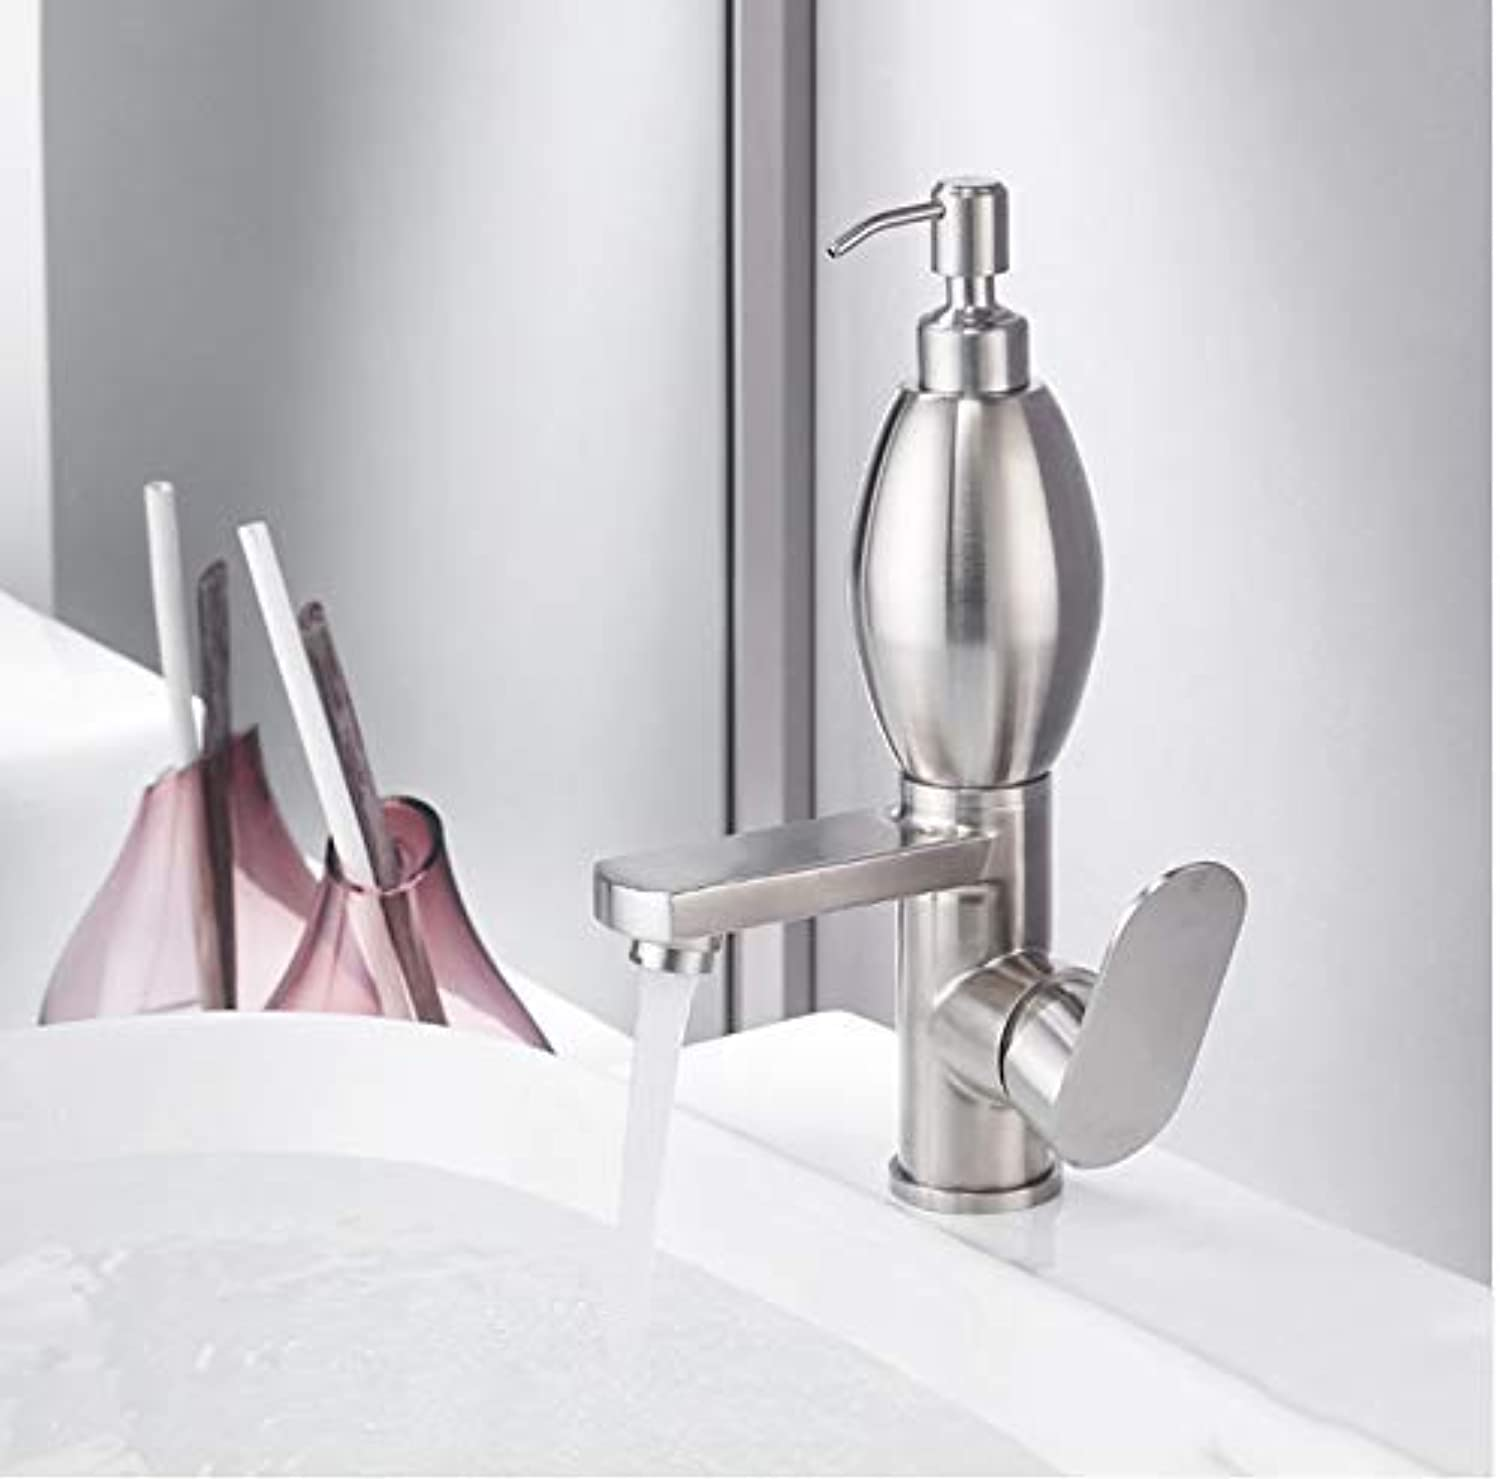 Oudan Taps Basin Faucets Stainless Steel 304 Basin Tap With Soap Dispenser New Brushed Nickel Single Hole Faucet Water Mixer Tap Taps (color   -, Size   -)